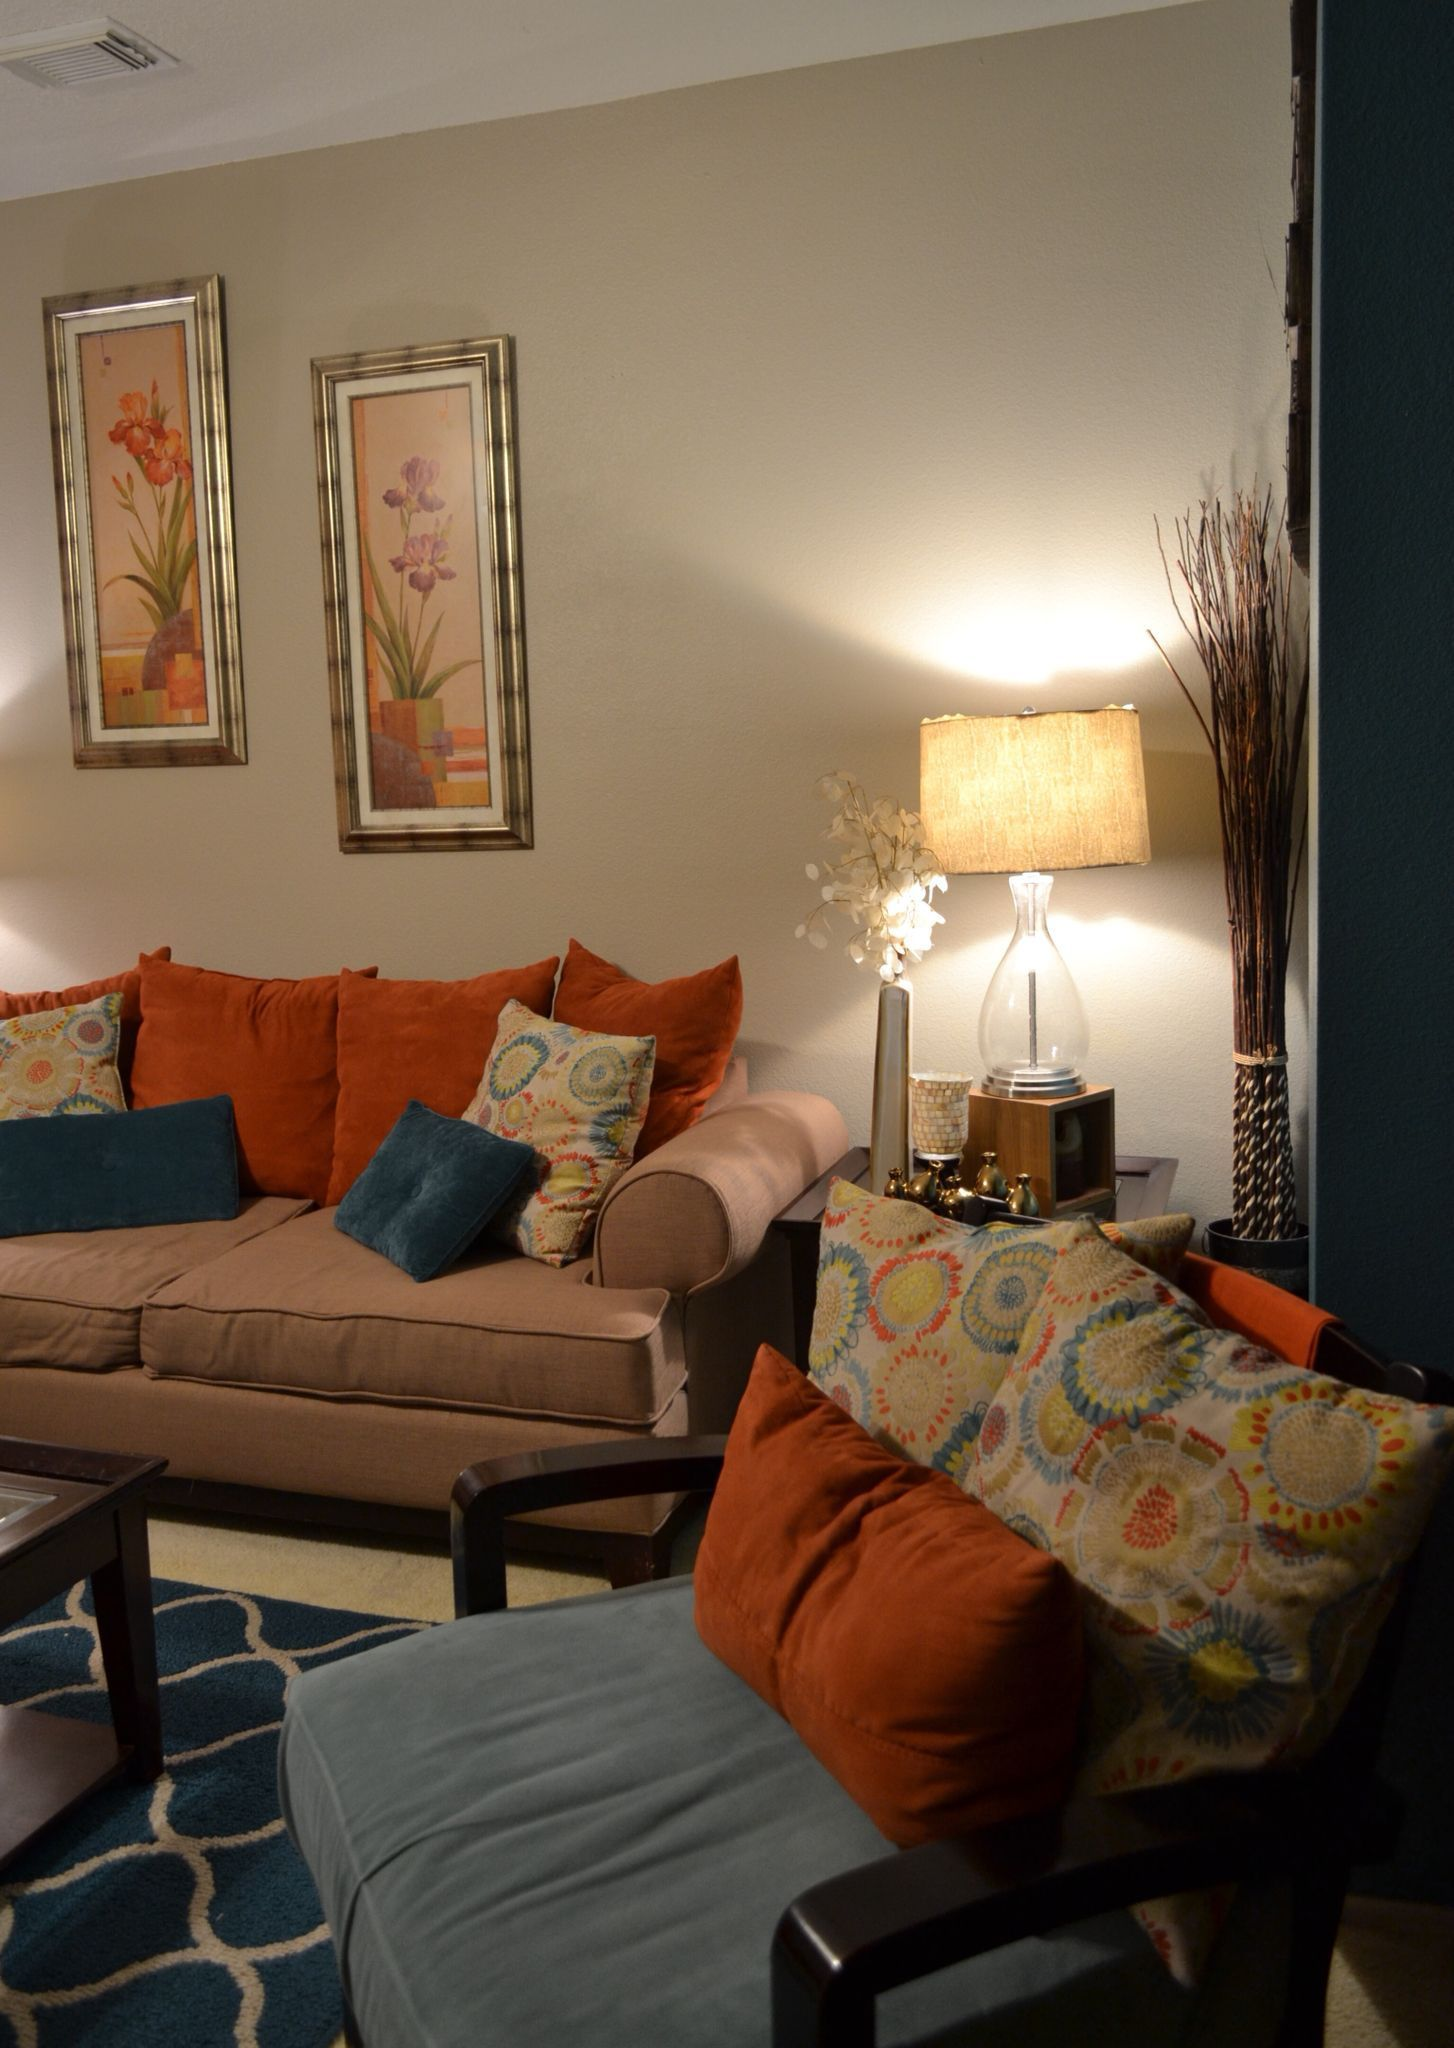 28 orange decorating ideas for living room 2021 in 2020 on living room paint ideas 2021 id=62787